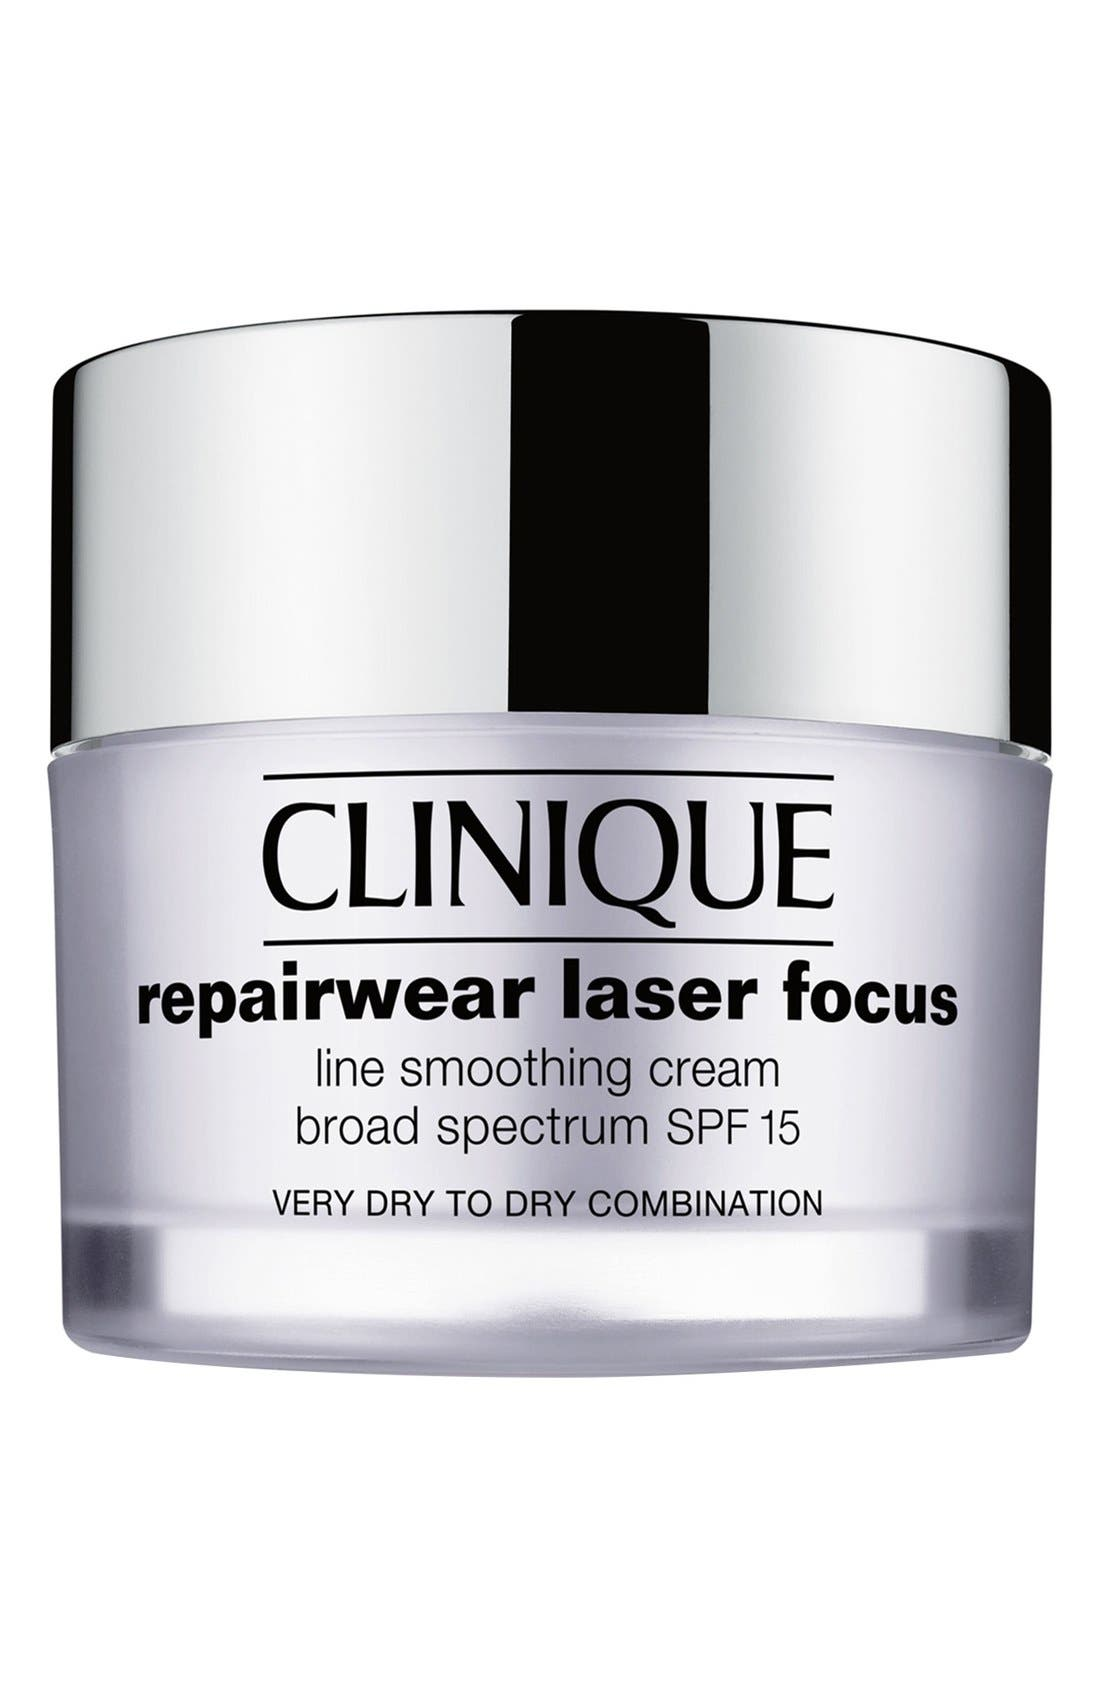 Repairwear Laser Focus SPF 15 Line Smoothing Cream for Combination Oily to Oily Skin,                         Main,                         color, 001